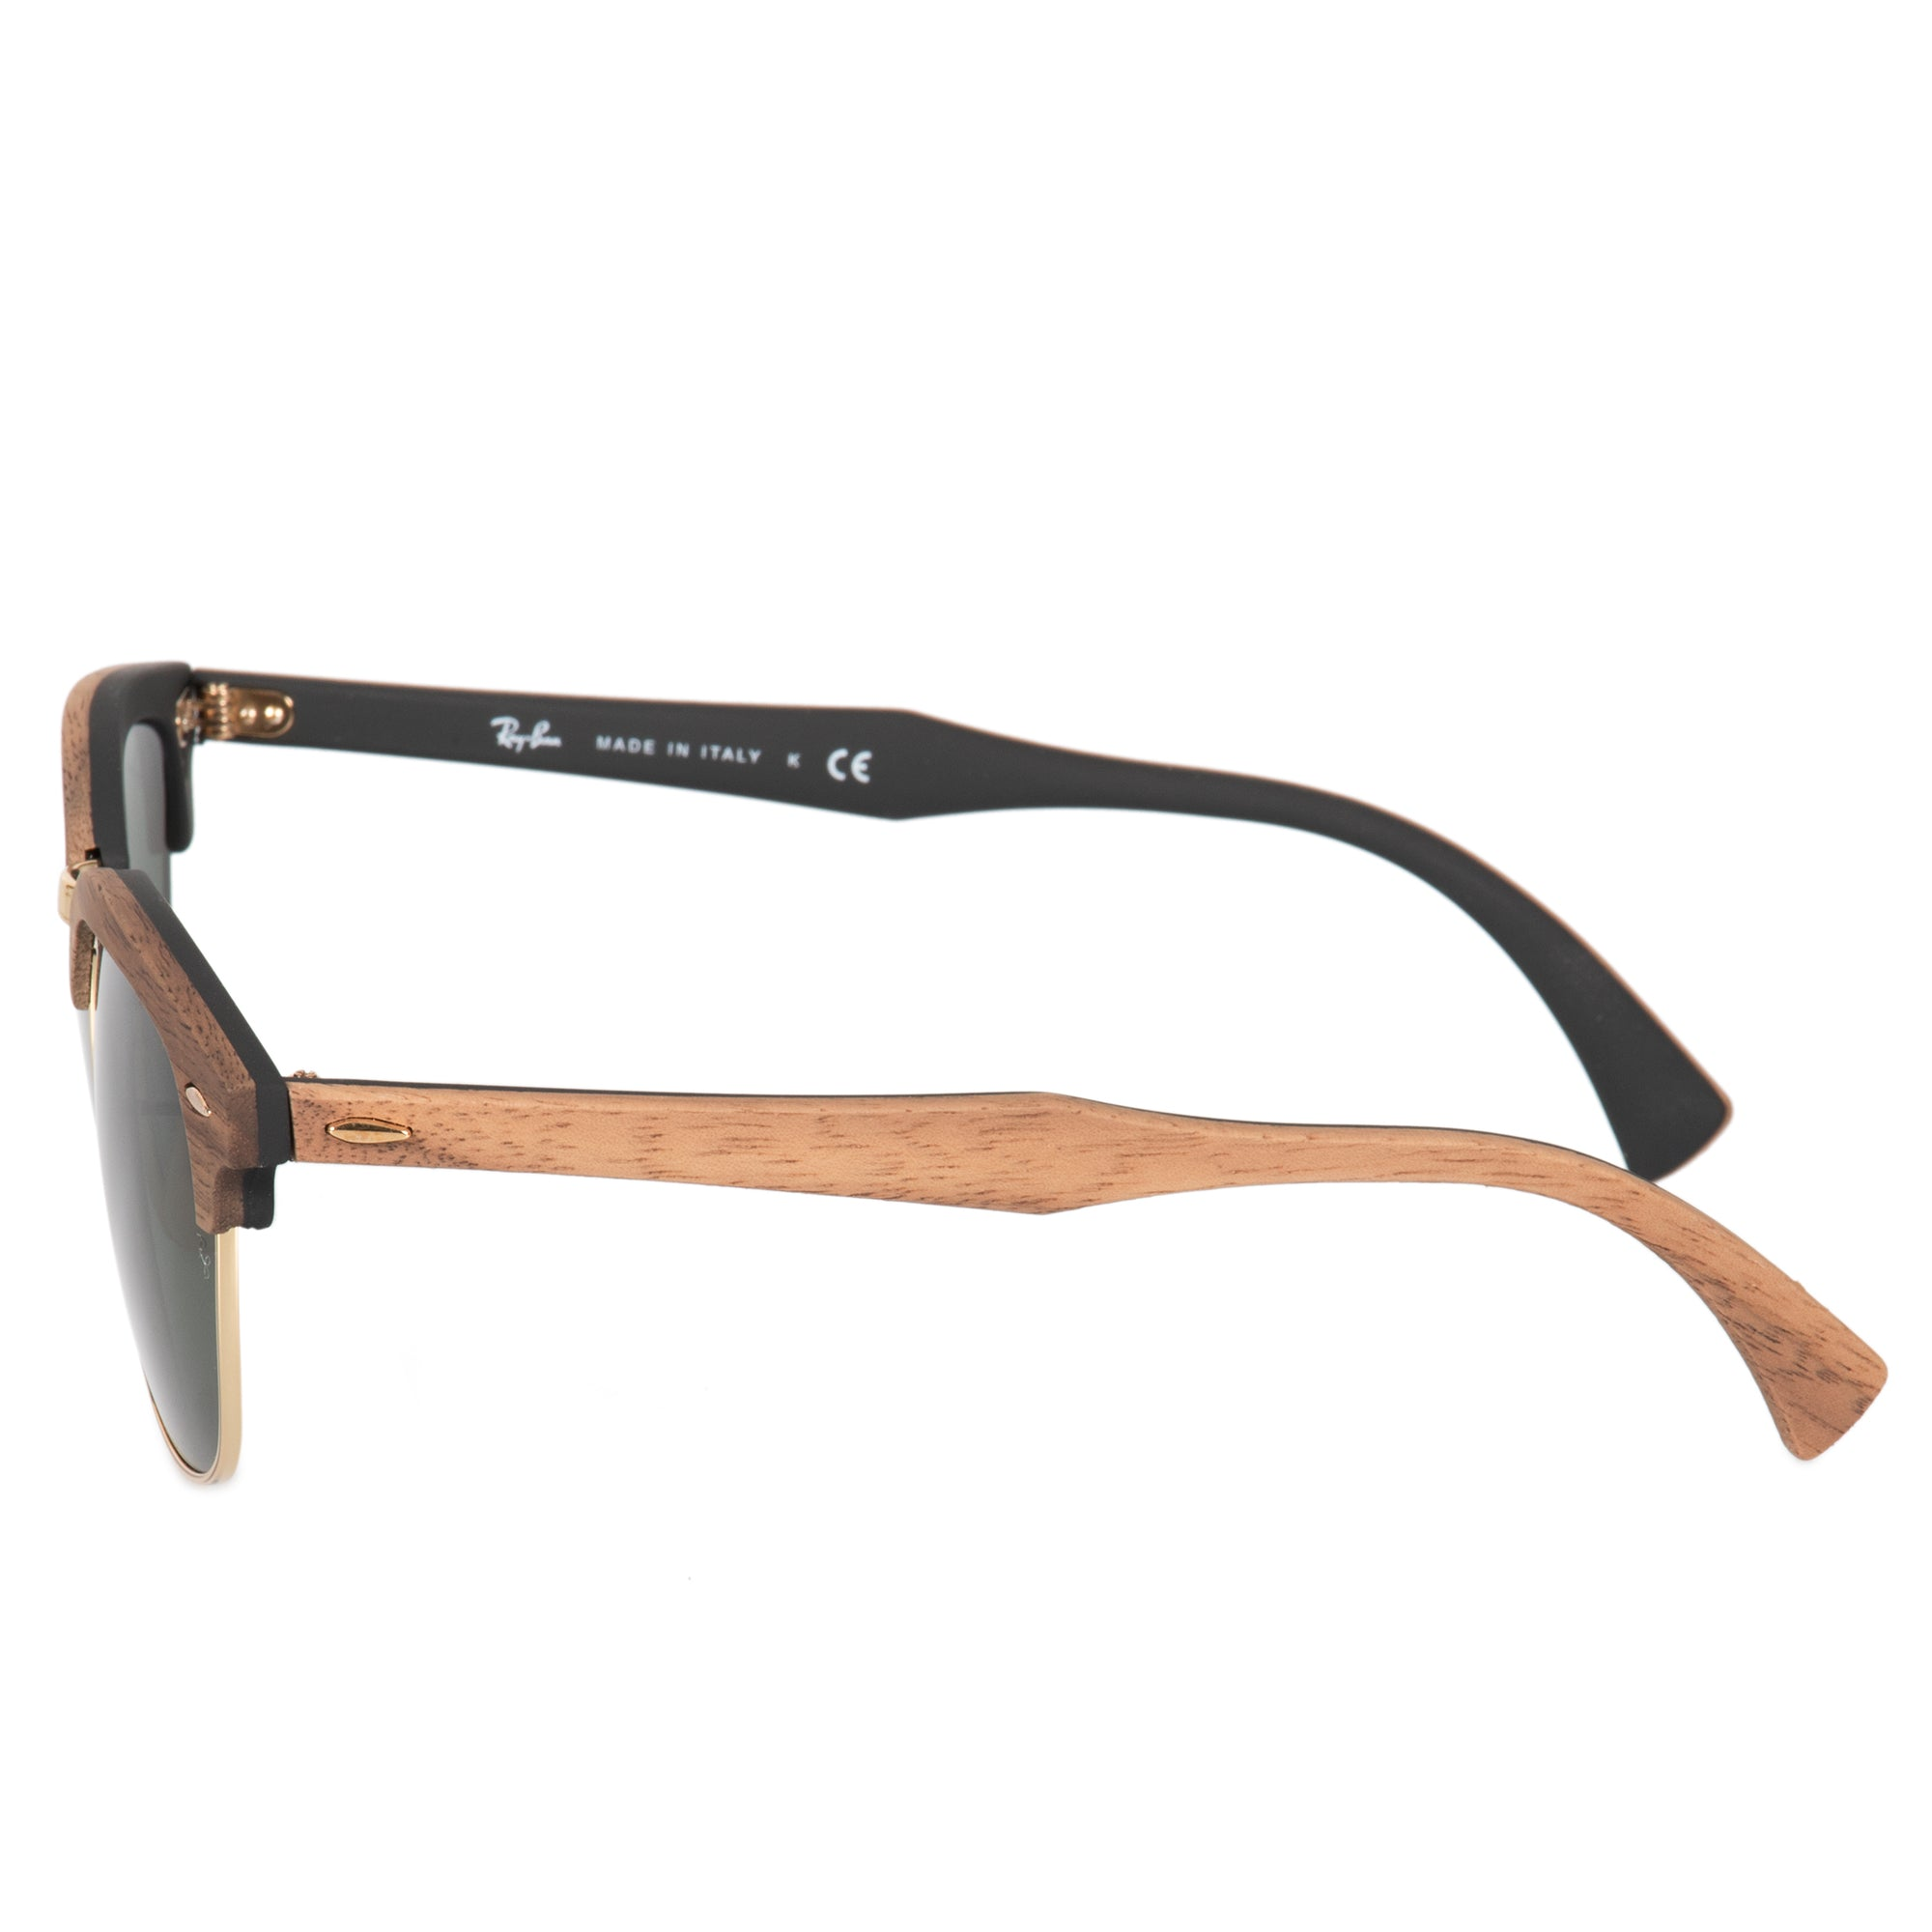 Ray-Ban Clubmaster Wood Sunglasses RB3016M 1181 51